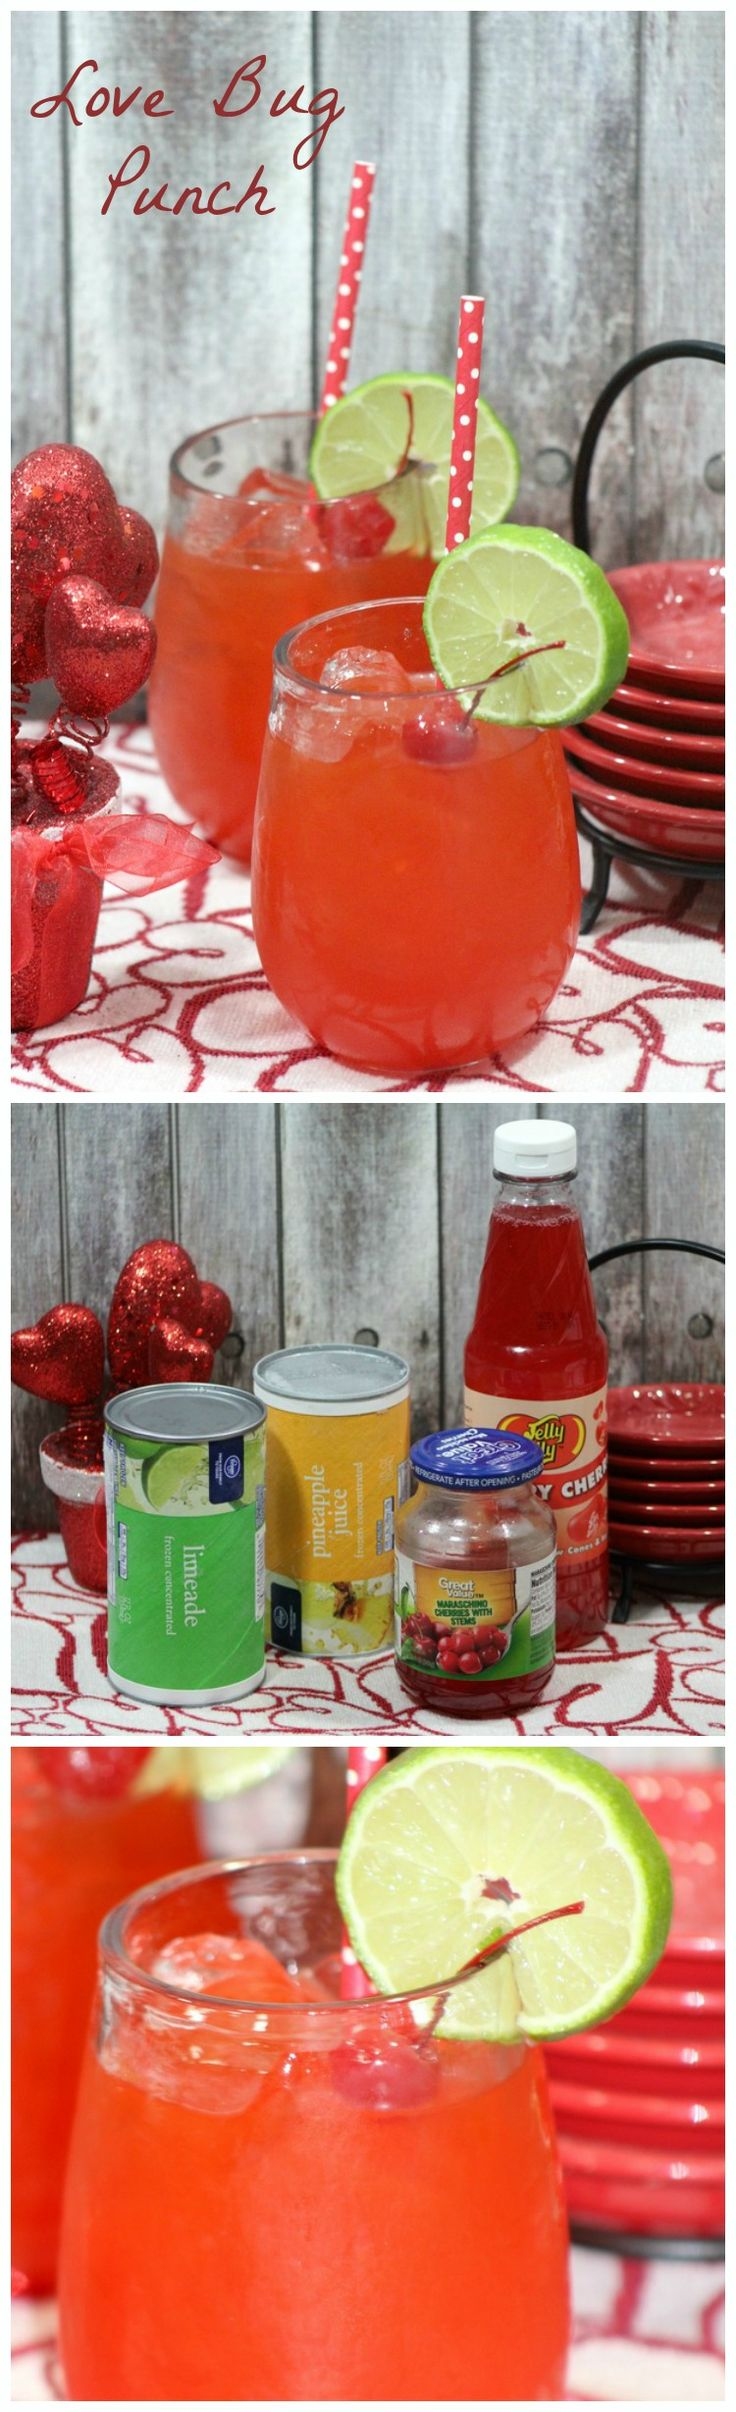 Looking for fun Valentine's day recipes? This one is so cute!  Bookmark this Love Bug Valentine's Day drink for kids now and make it on the special day for your family!